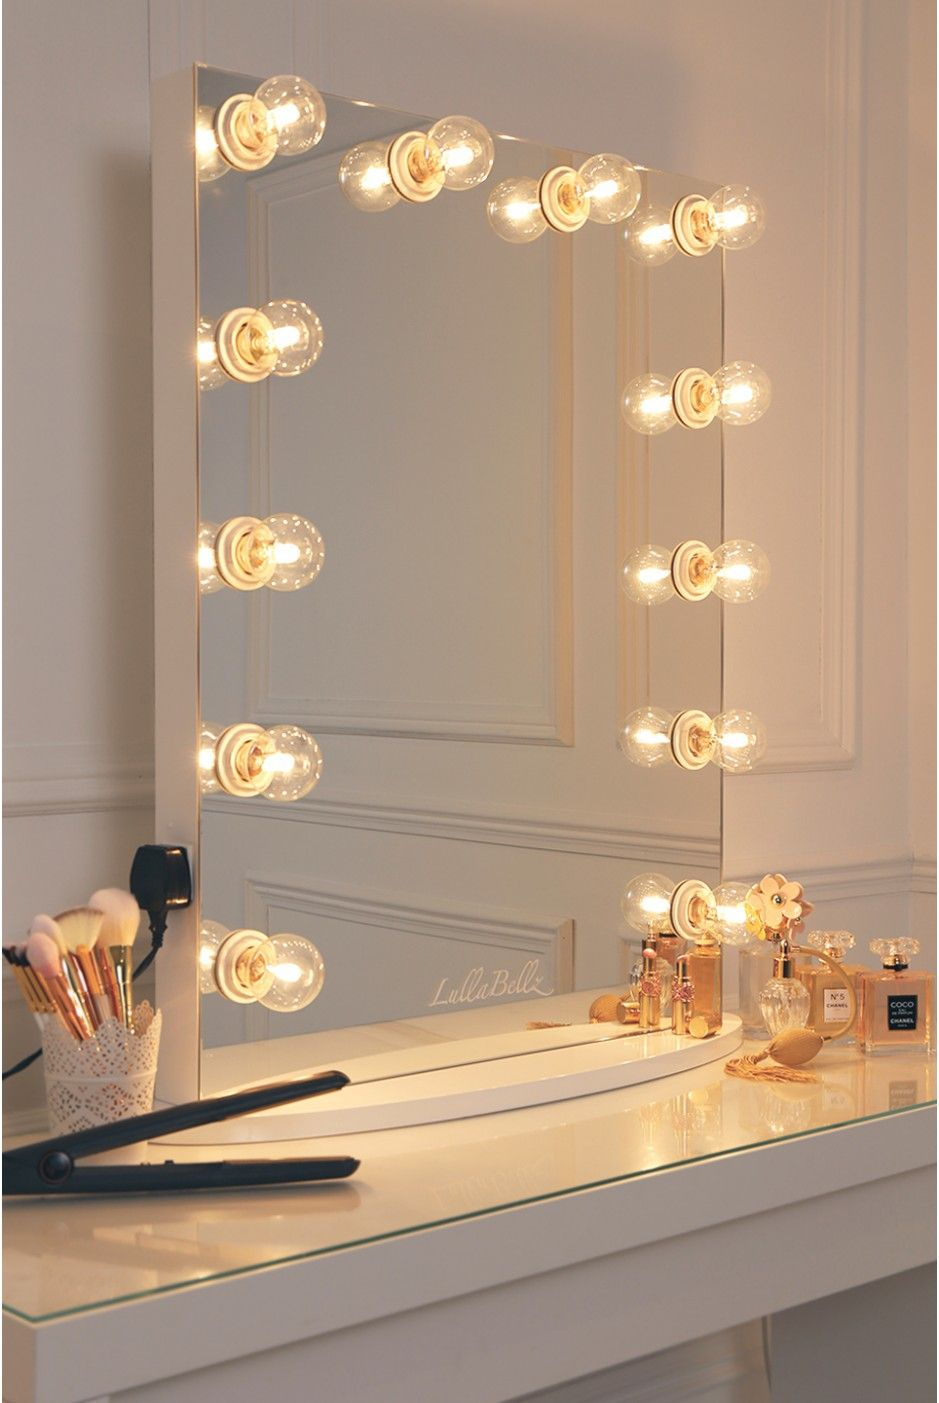 lullabellz hollywood glow vanity mirror clear bulbs miroir fille miroir lumineux led salon de